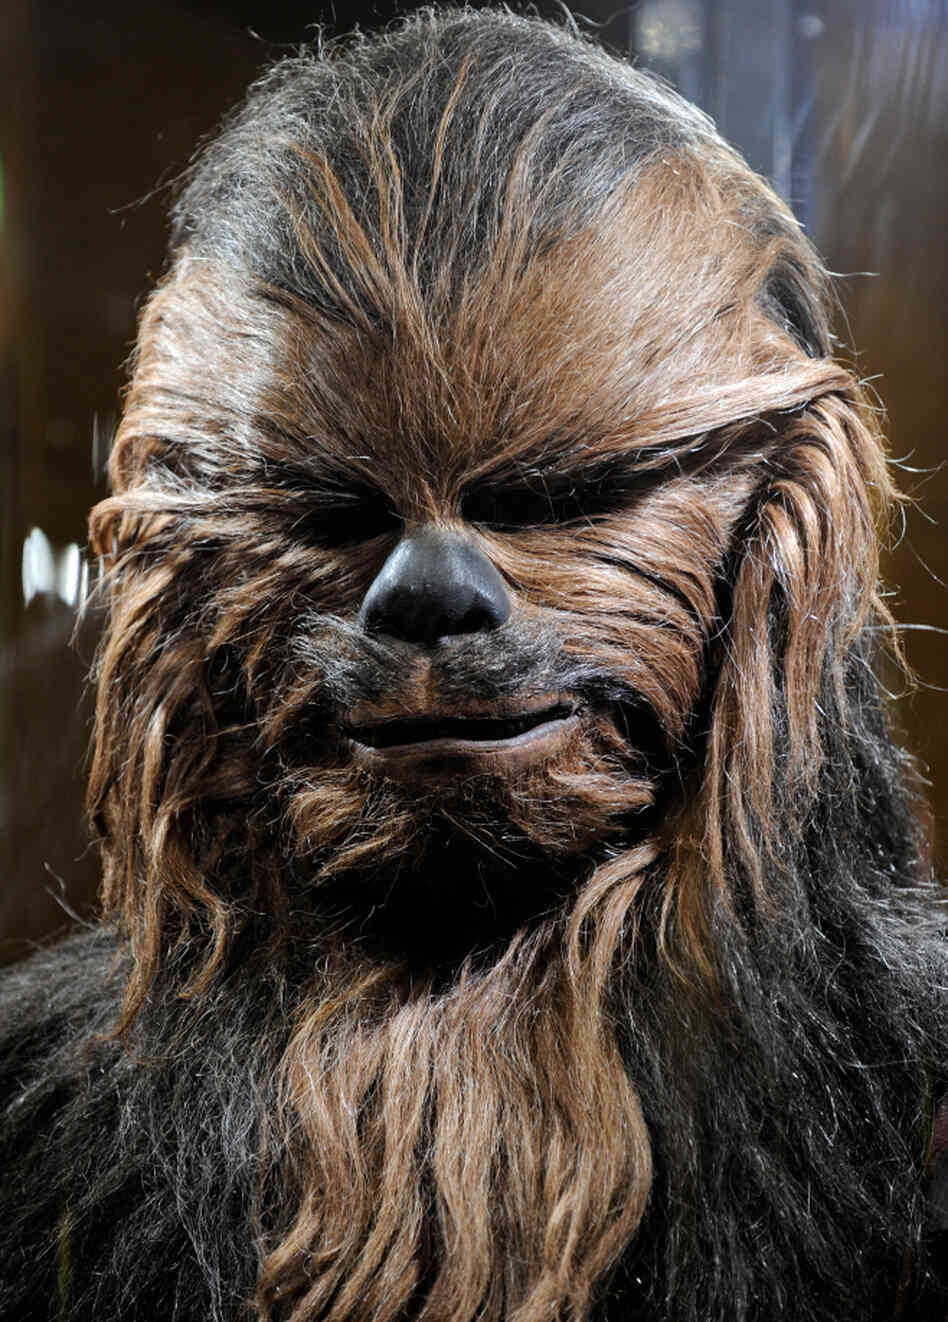 Chewbacca, the most famous Wookiee of them all.